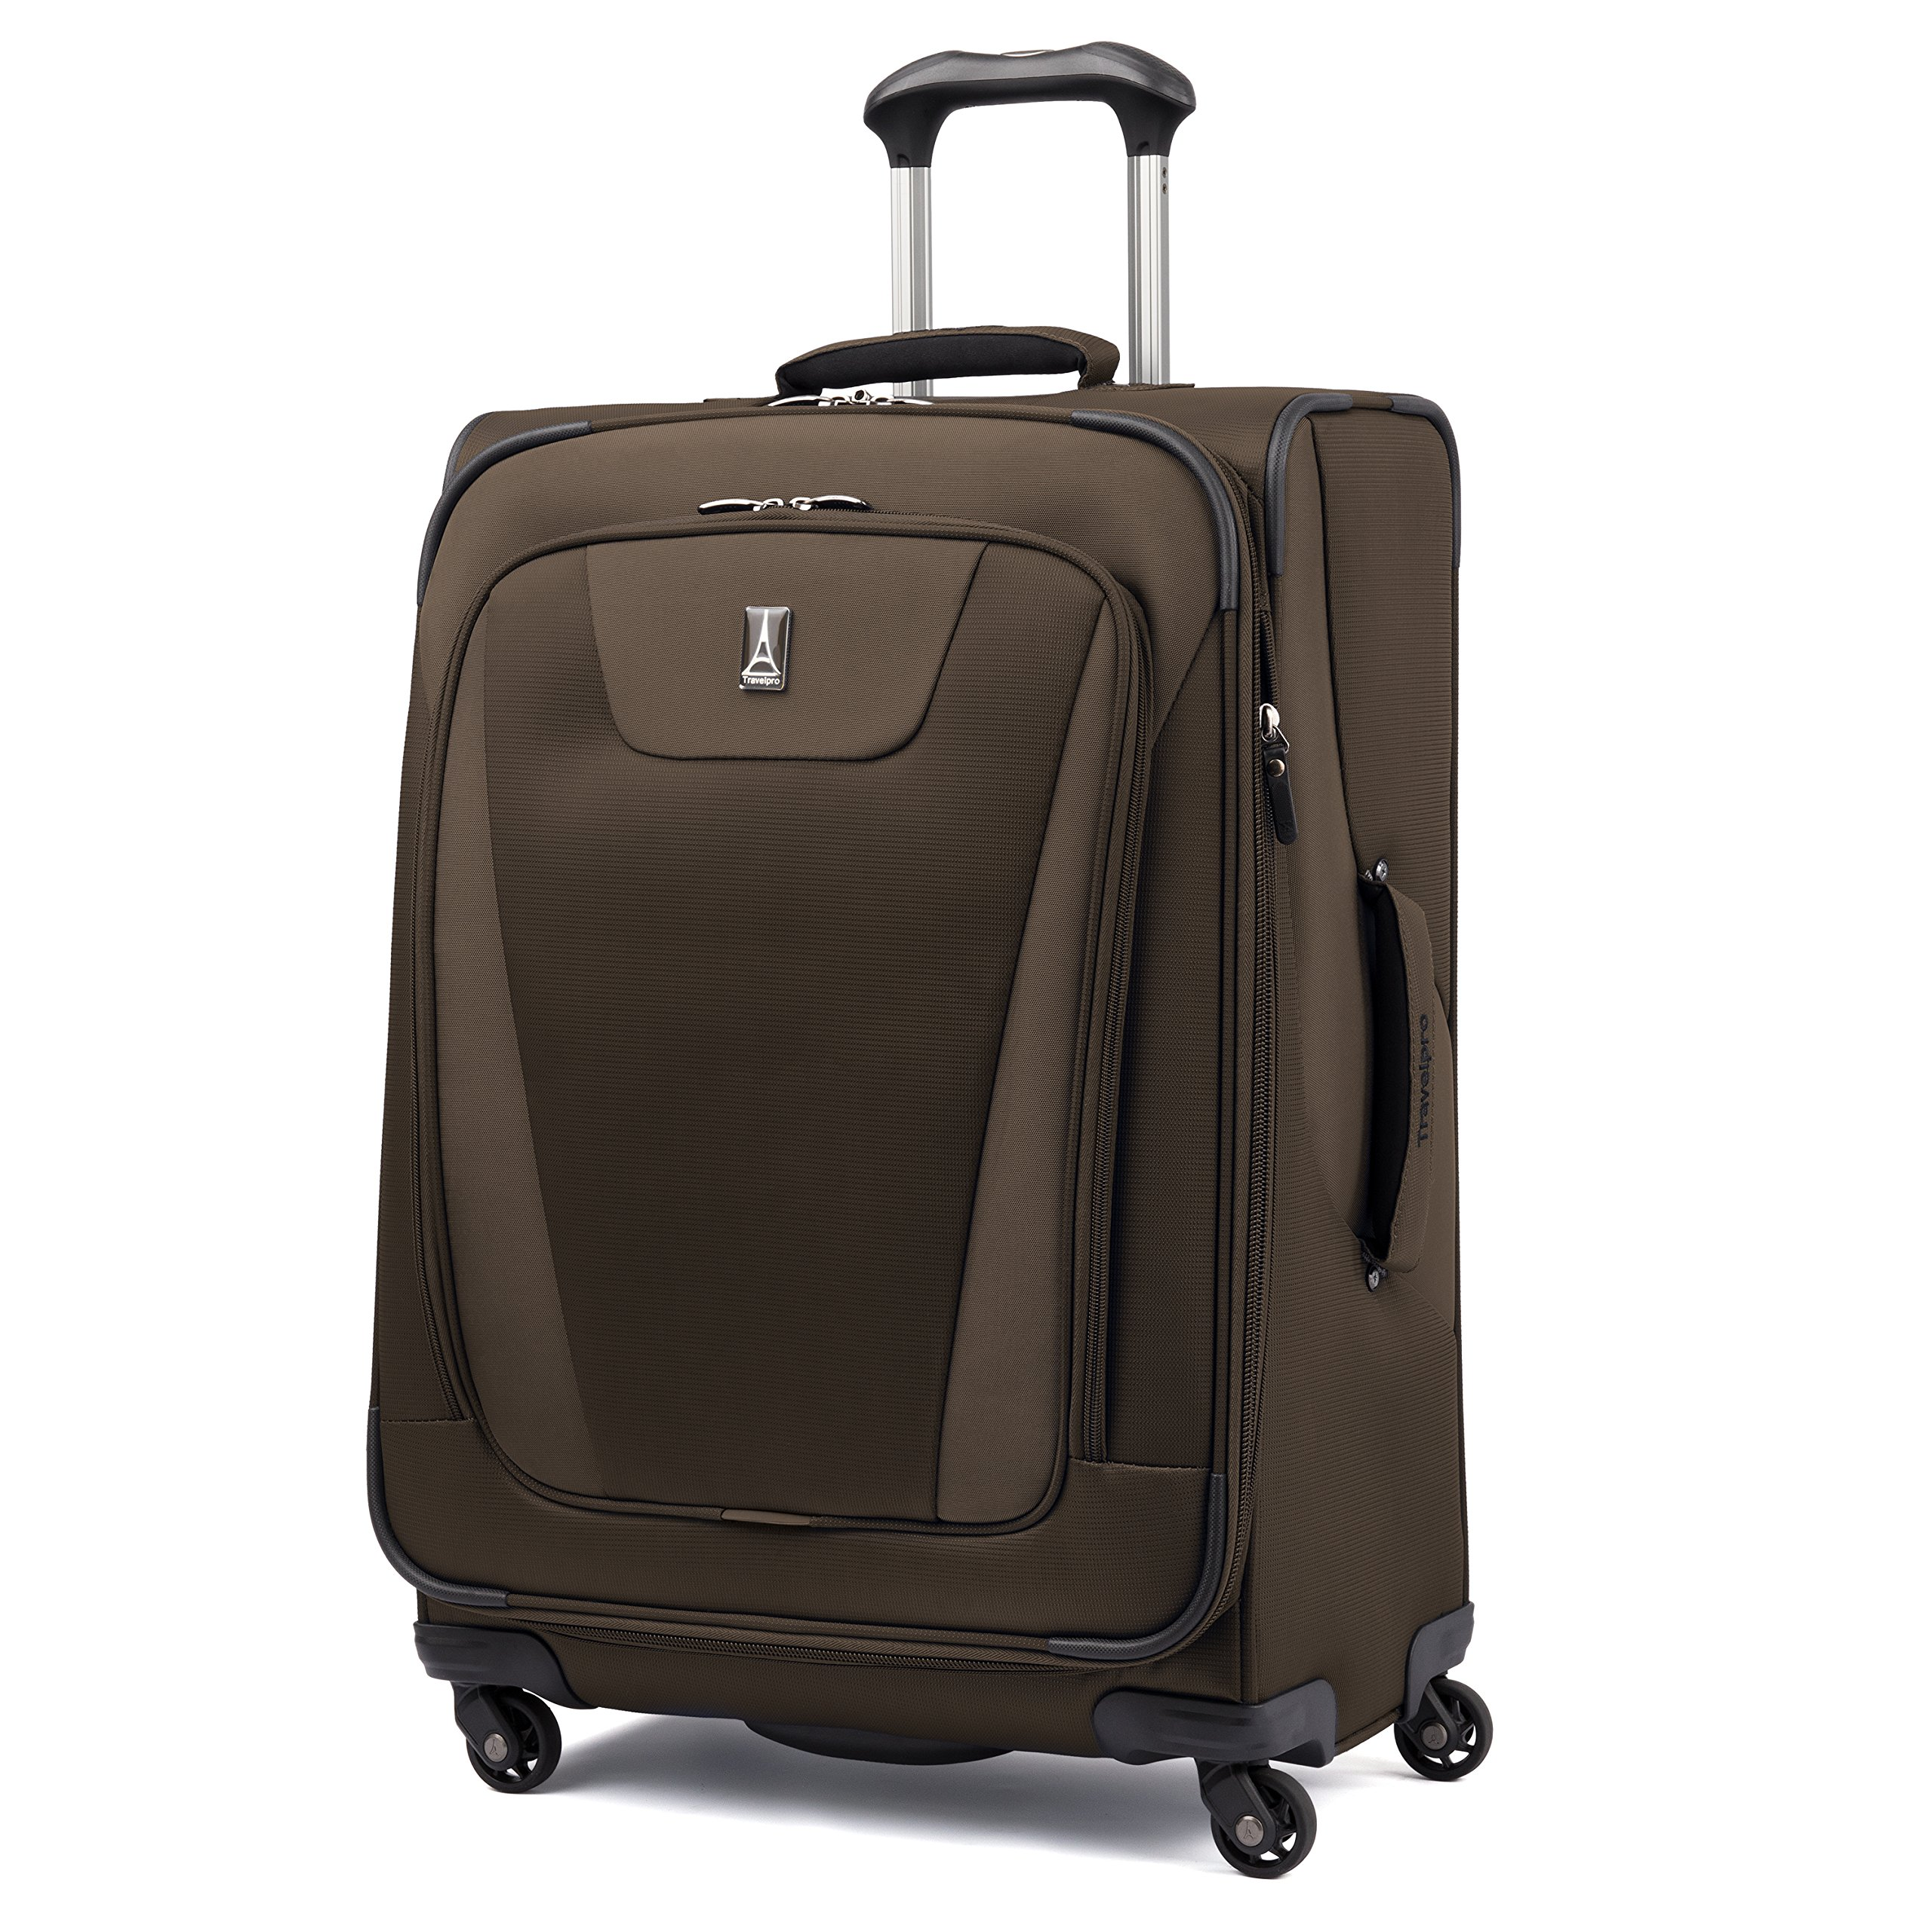 Travelpro Maxlite 4 Expandable 25 Inch Spinner Suitcase (Mocha)